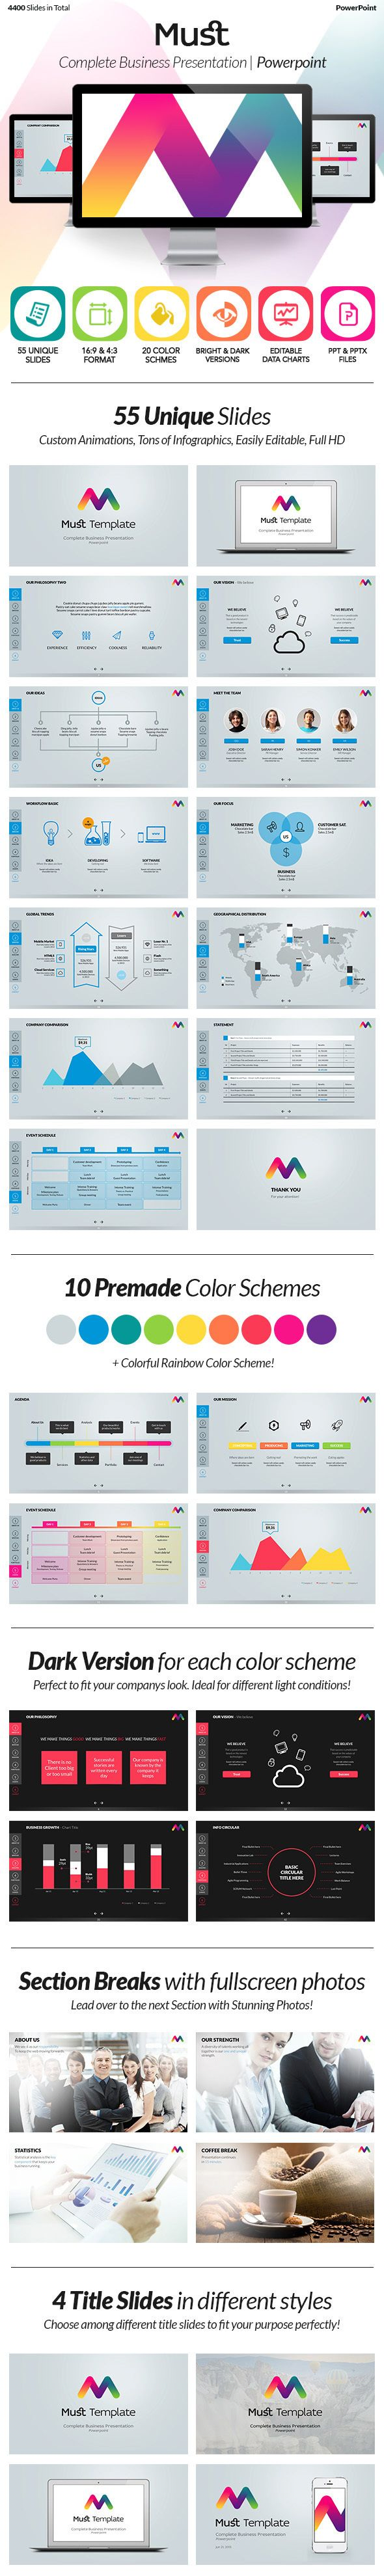 Must PowerPoint & Keynote Presentation Template by Ergün , via Behance